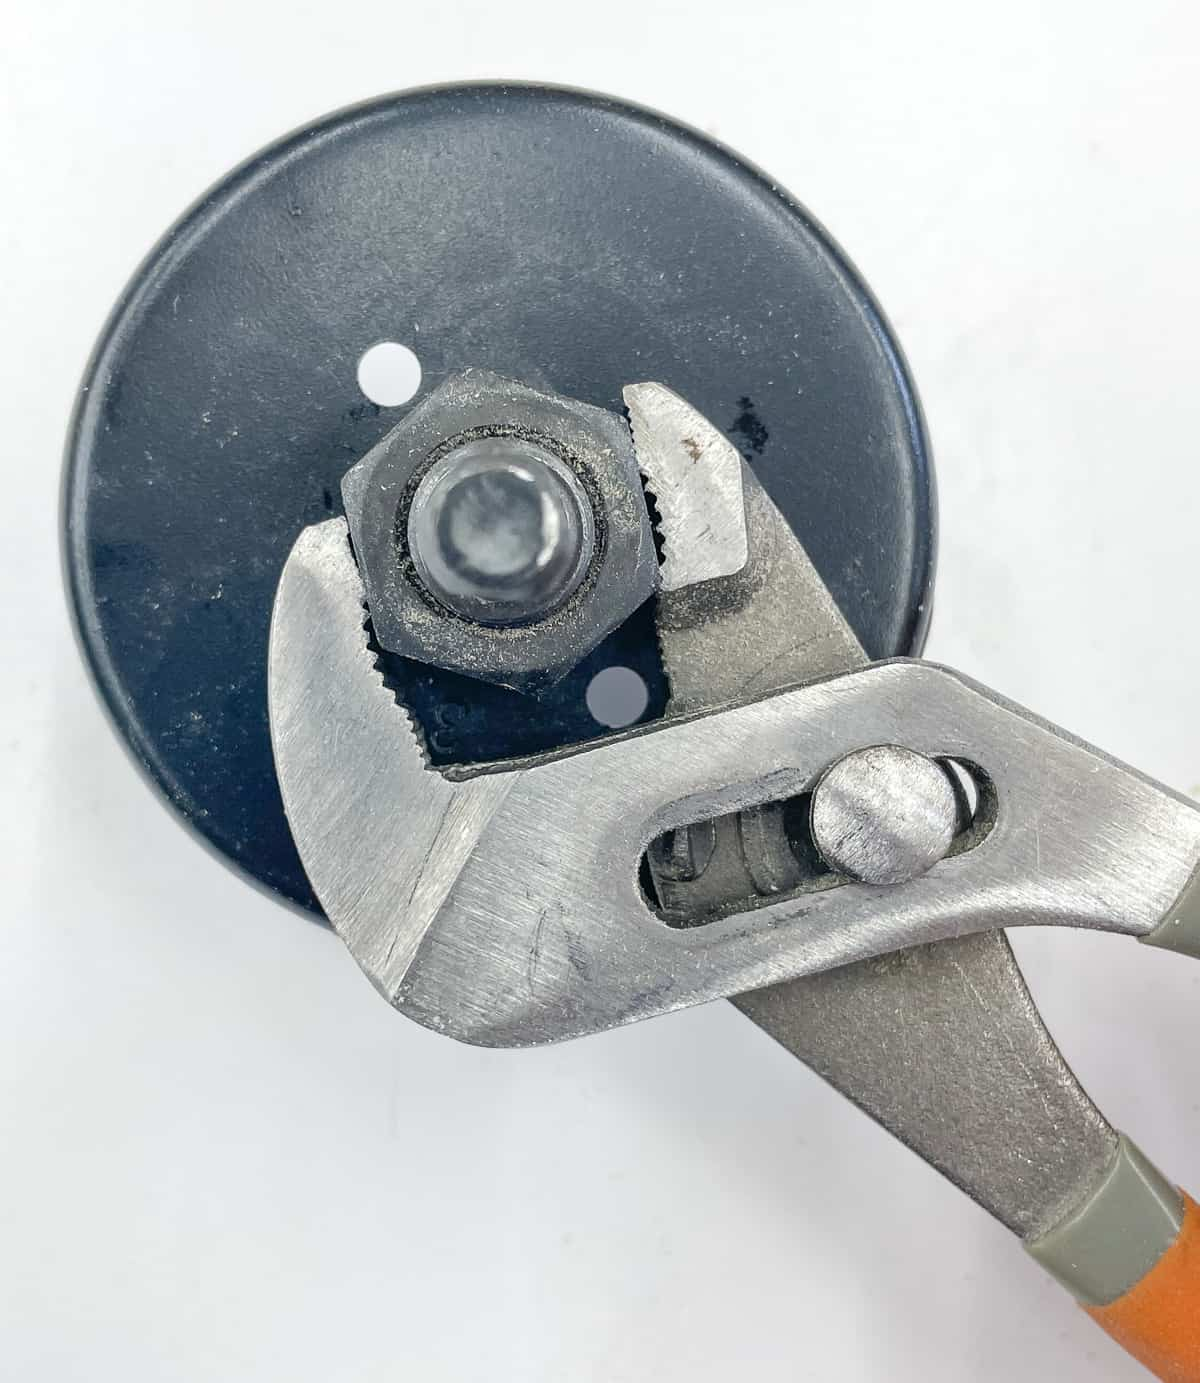 tightening hole saw nut with an adjustable wrench